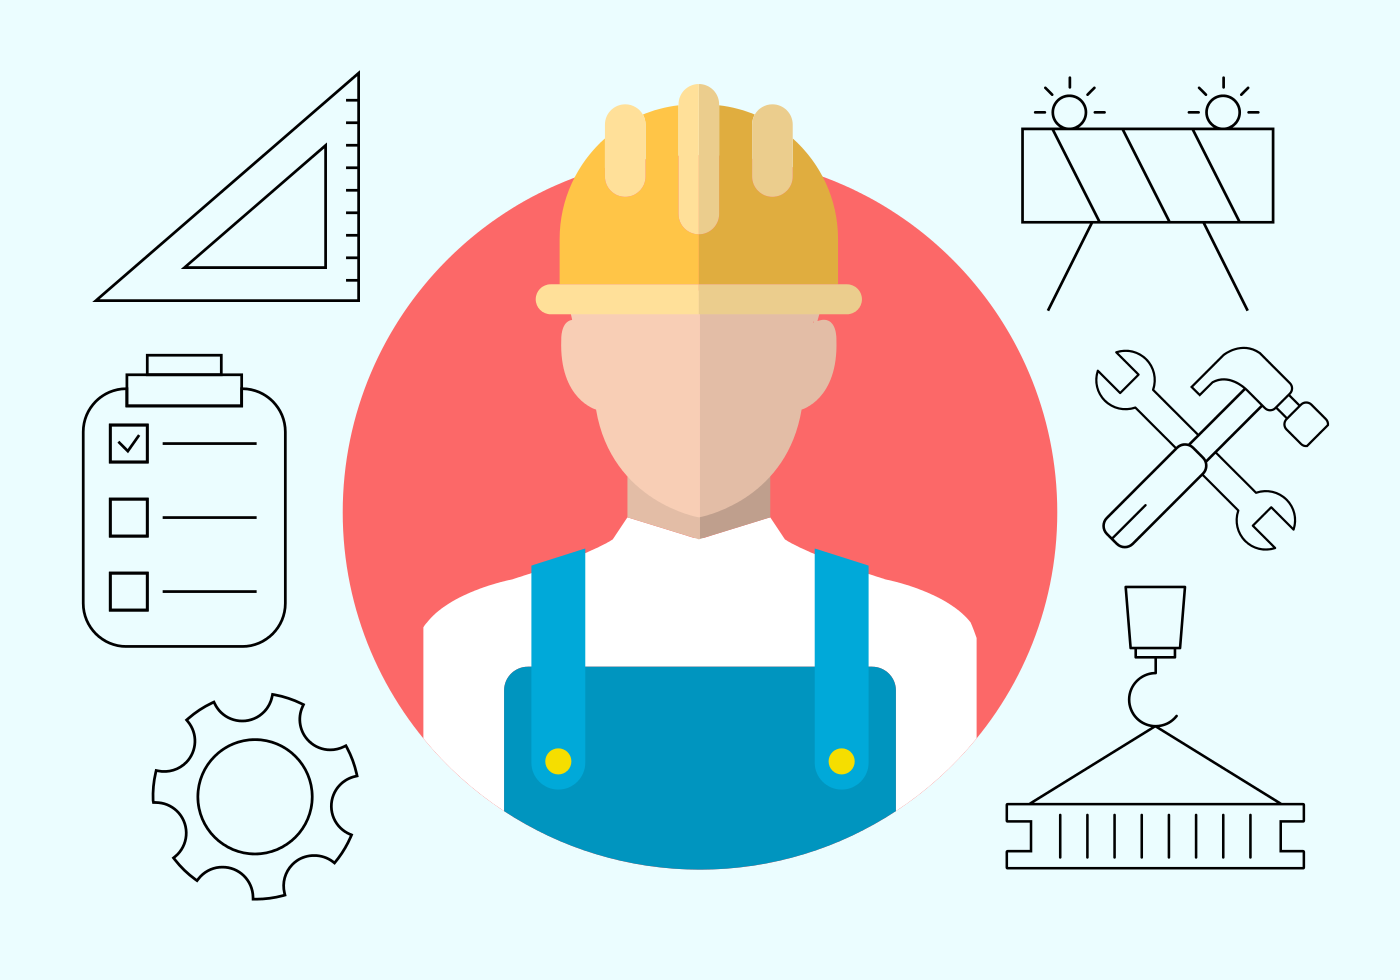 Advantages of Construction: Why Work in the Construction